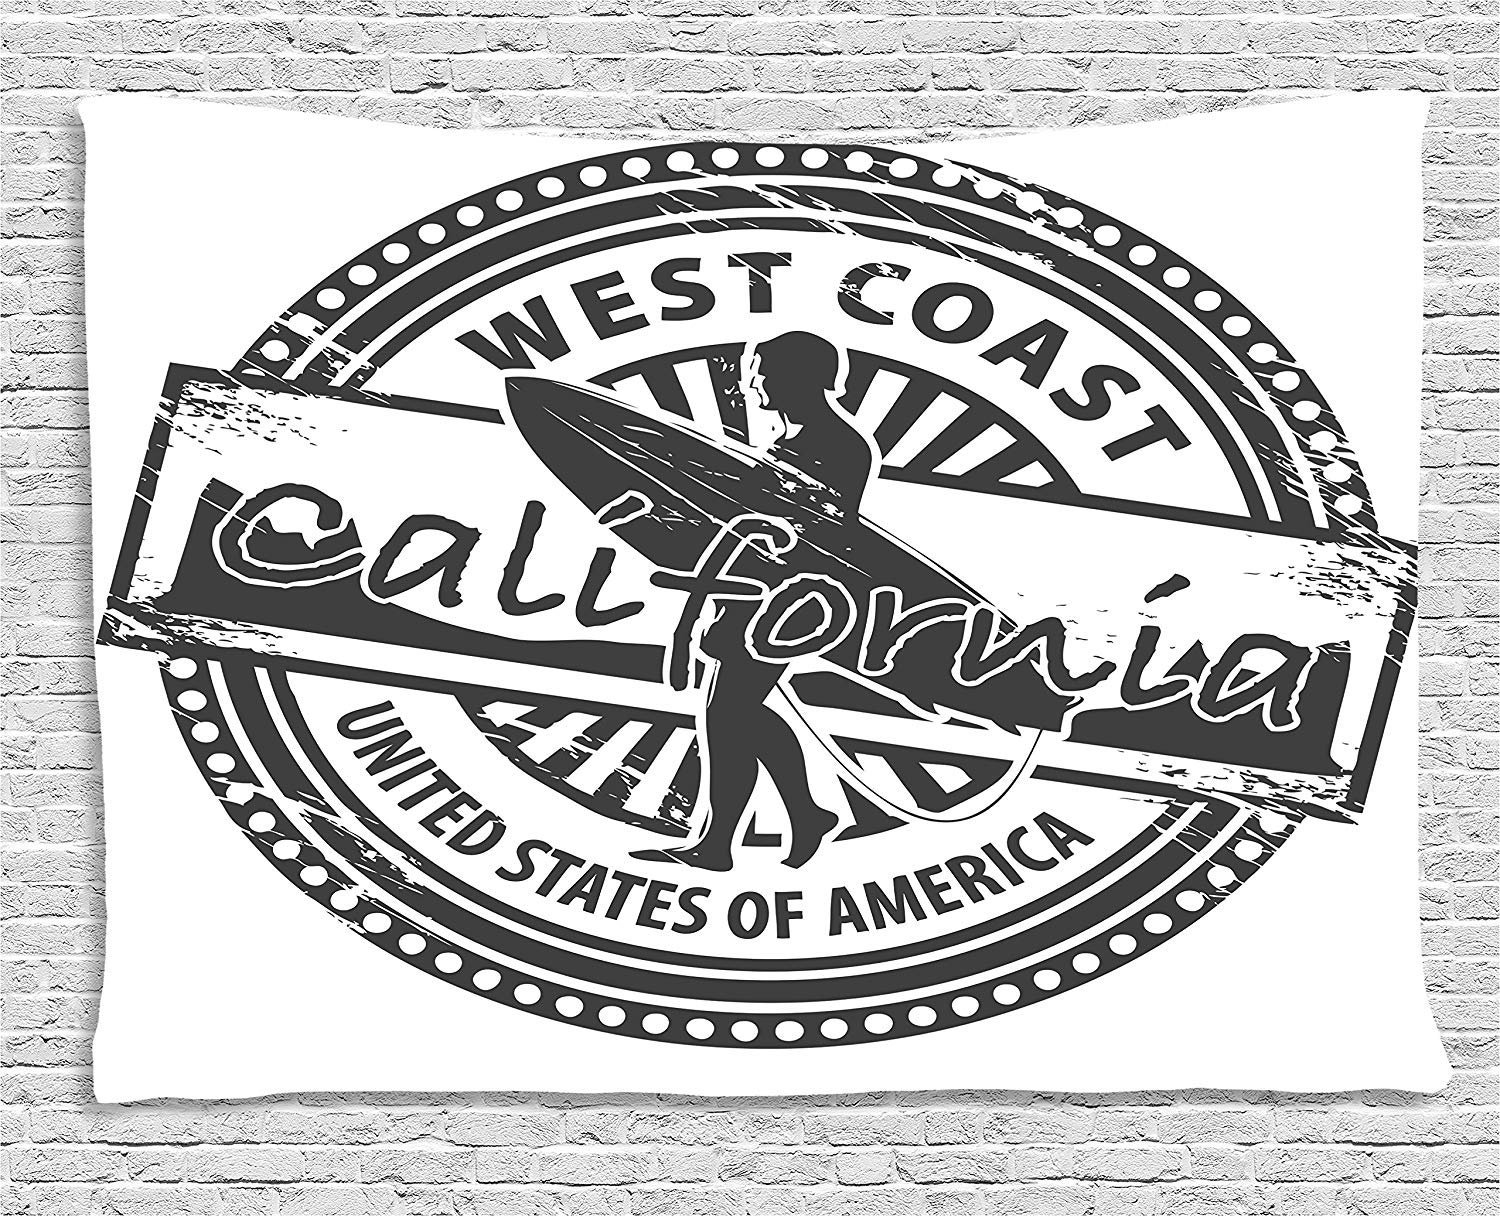 XHFITCLtd Ride The Wave Tapestry, West Coast California United States of America Grunge Vintage Stamp Print, Wall Hanging for Bedroom Living Room Dorm, 80 W X 60 L Inches, Grey White by XHFITCLtd (Image #1)